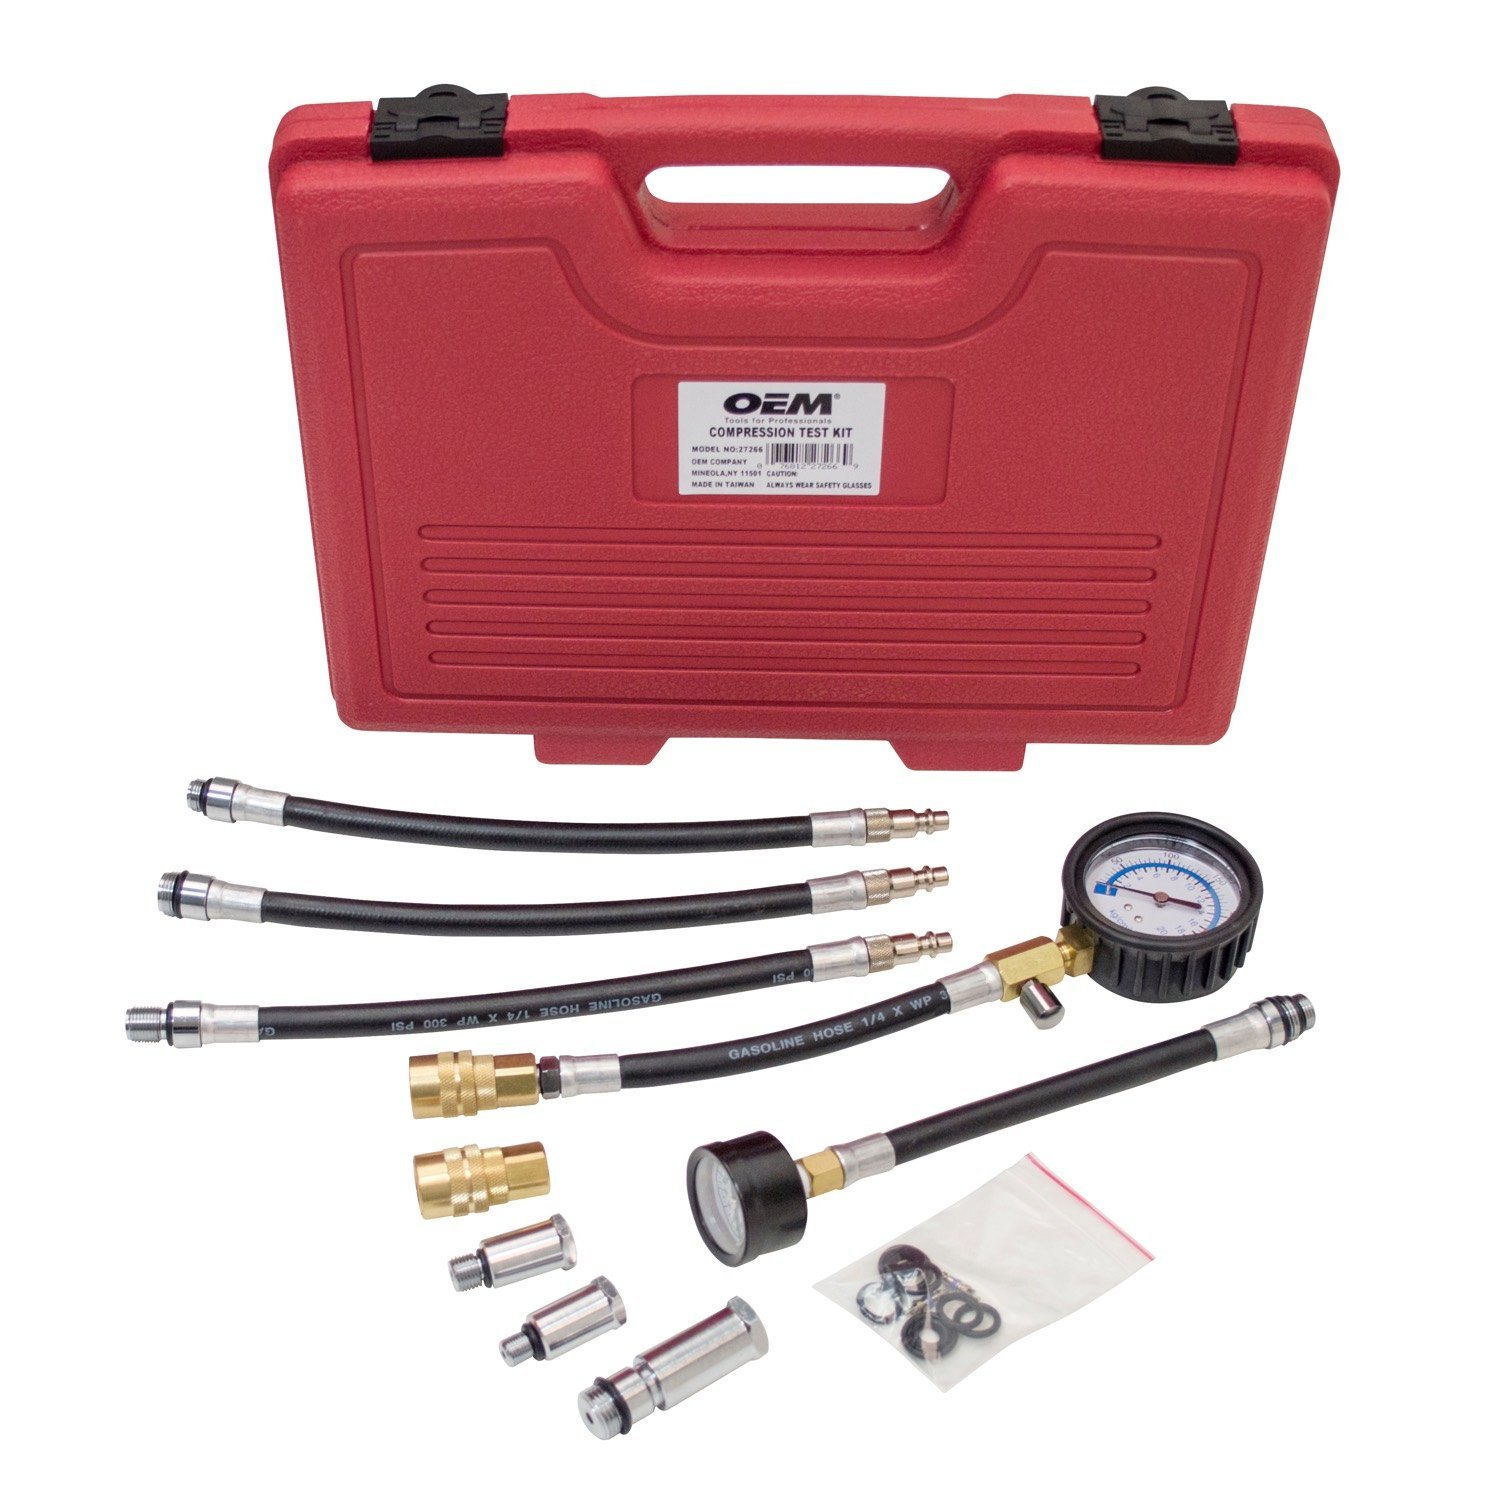 OEMTOOLS 27266 Master Compression Test Kit by OEMTOOLS